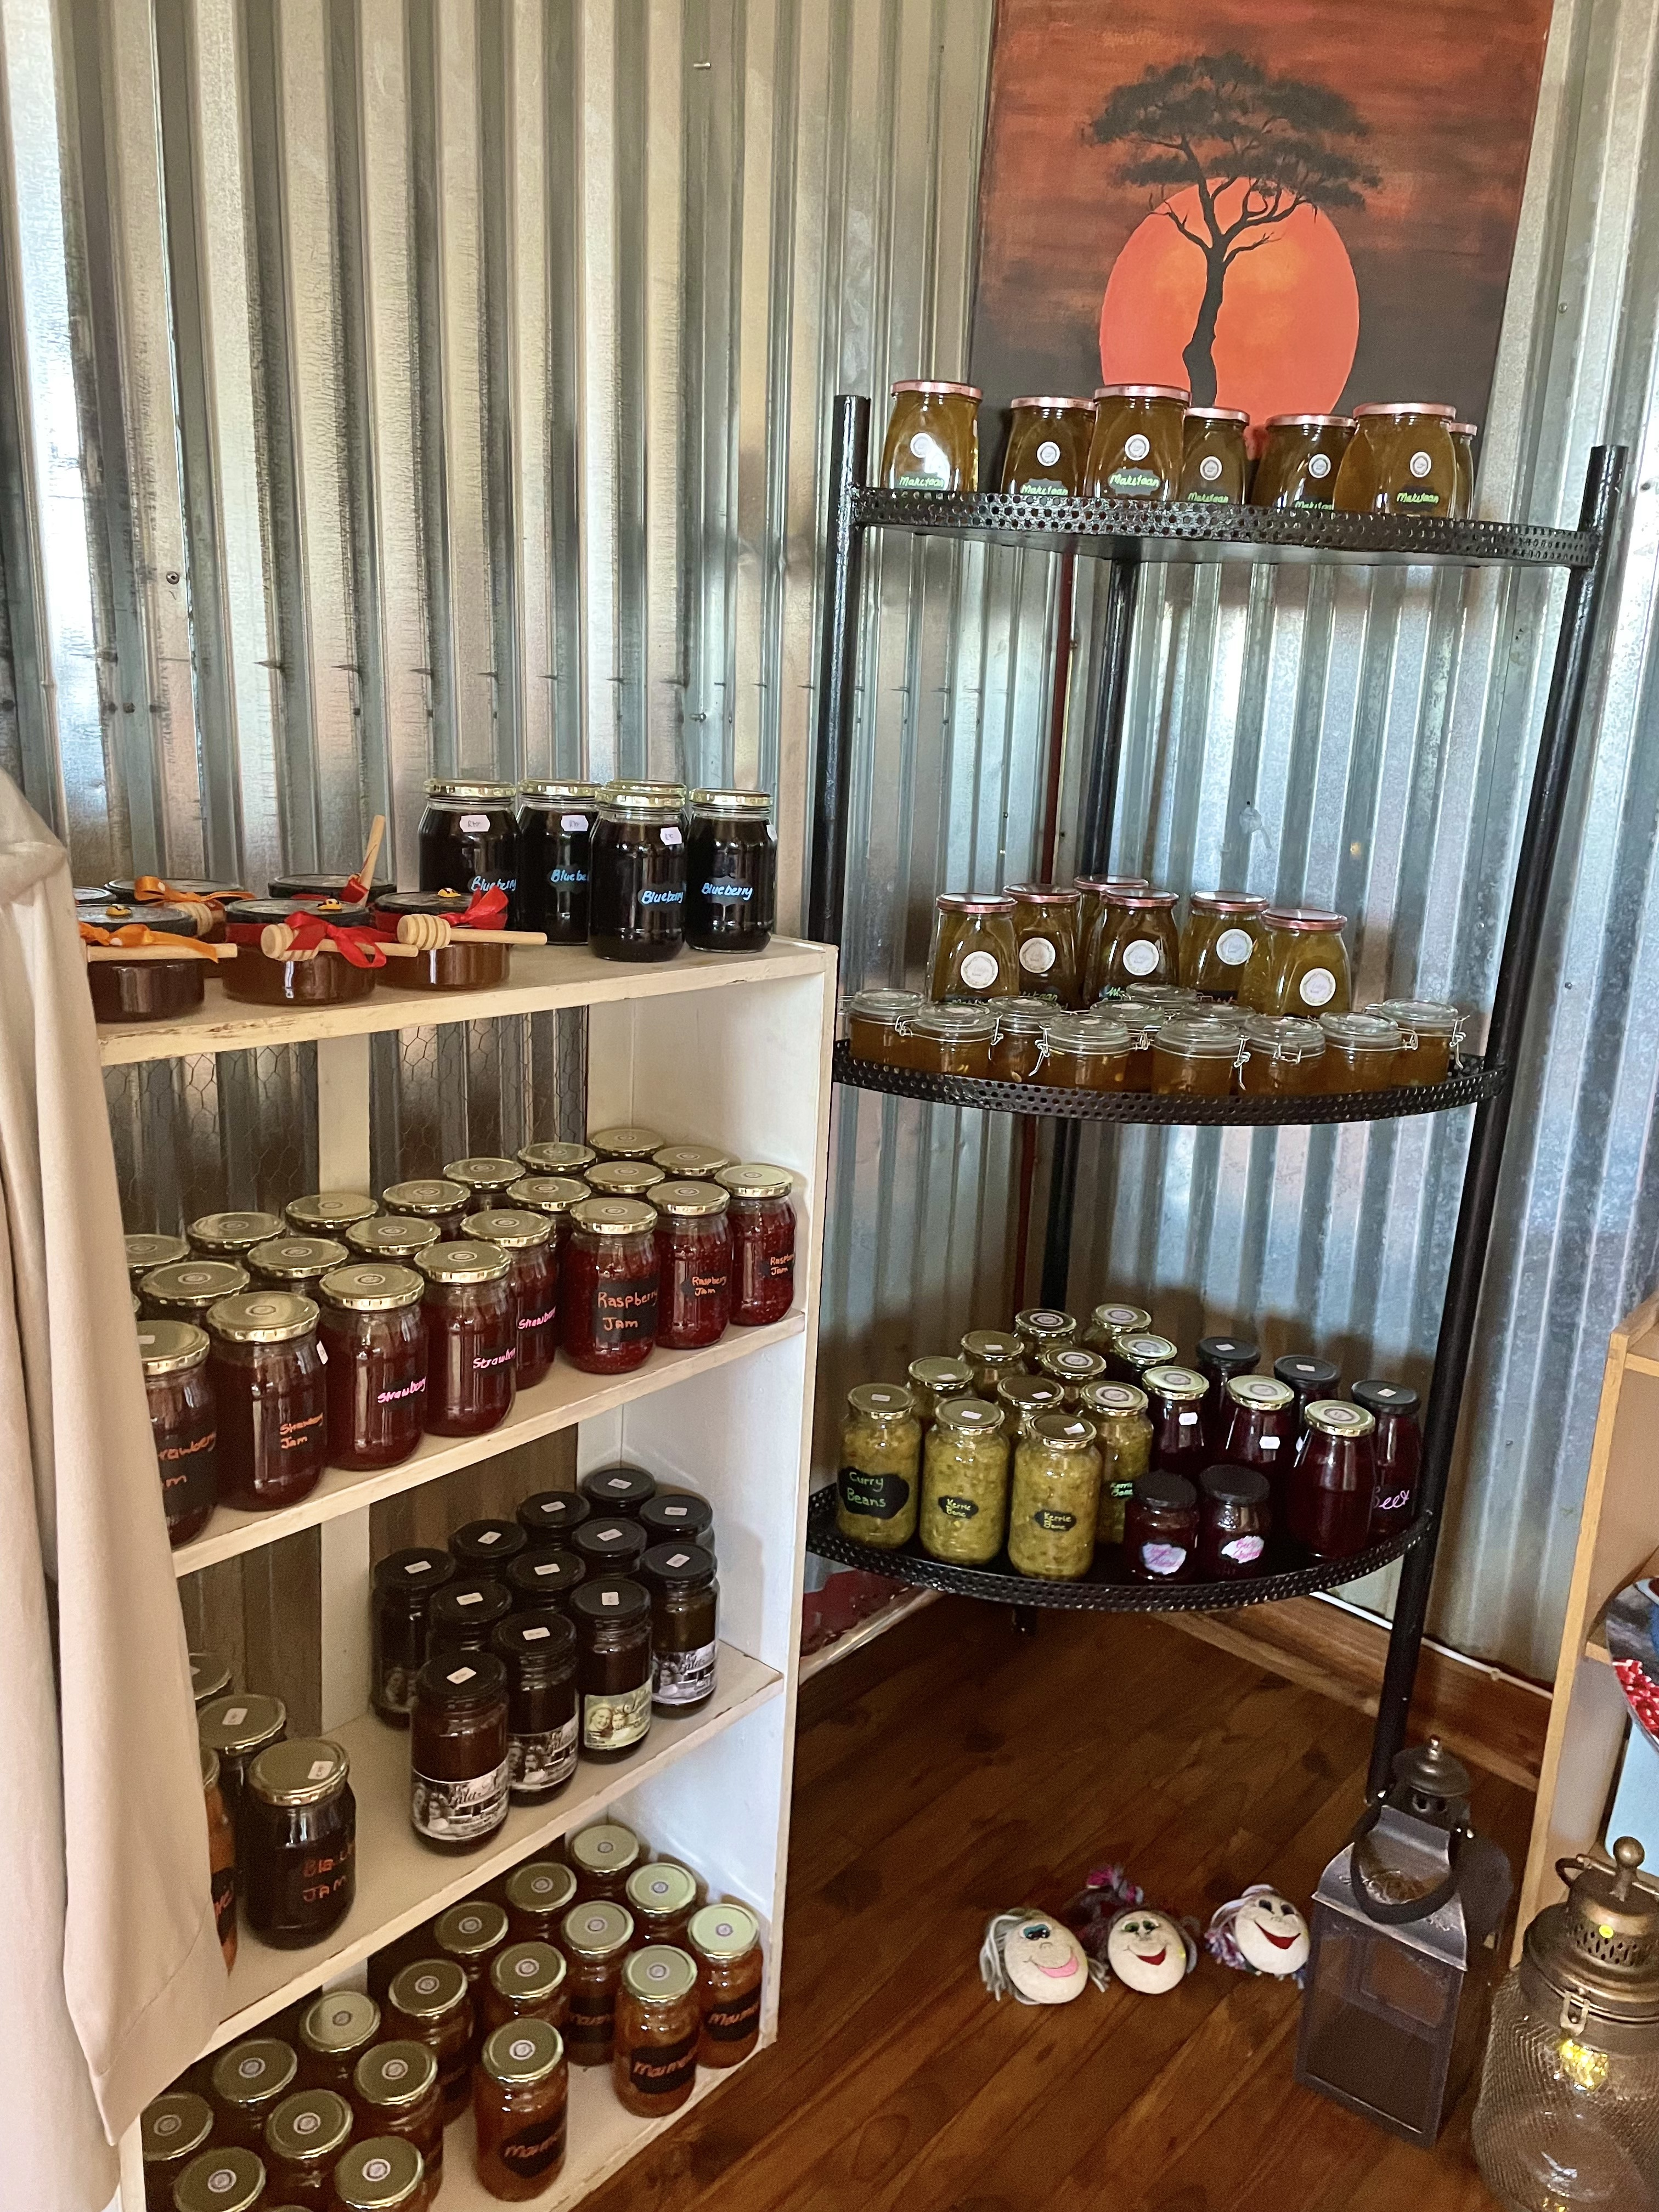 Curio shop at Dinokeng Game Reserve